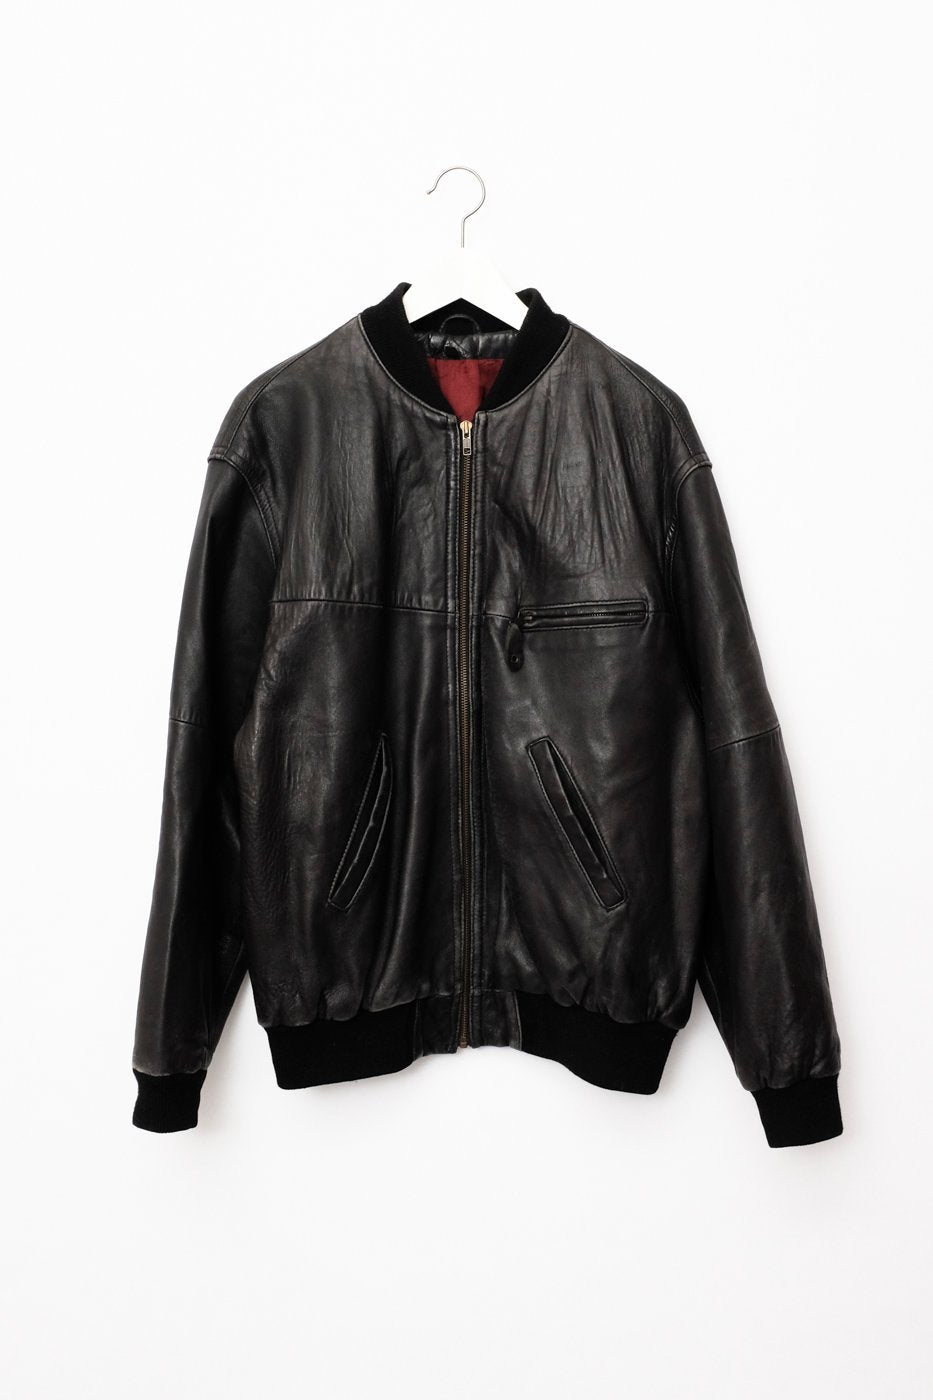 0404_LEATHER BLACK BOMBER JACKET